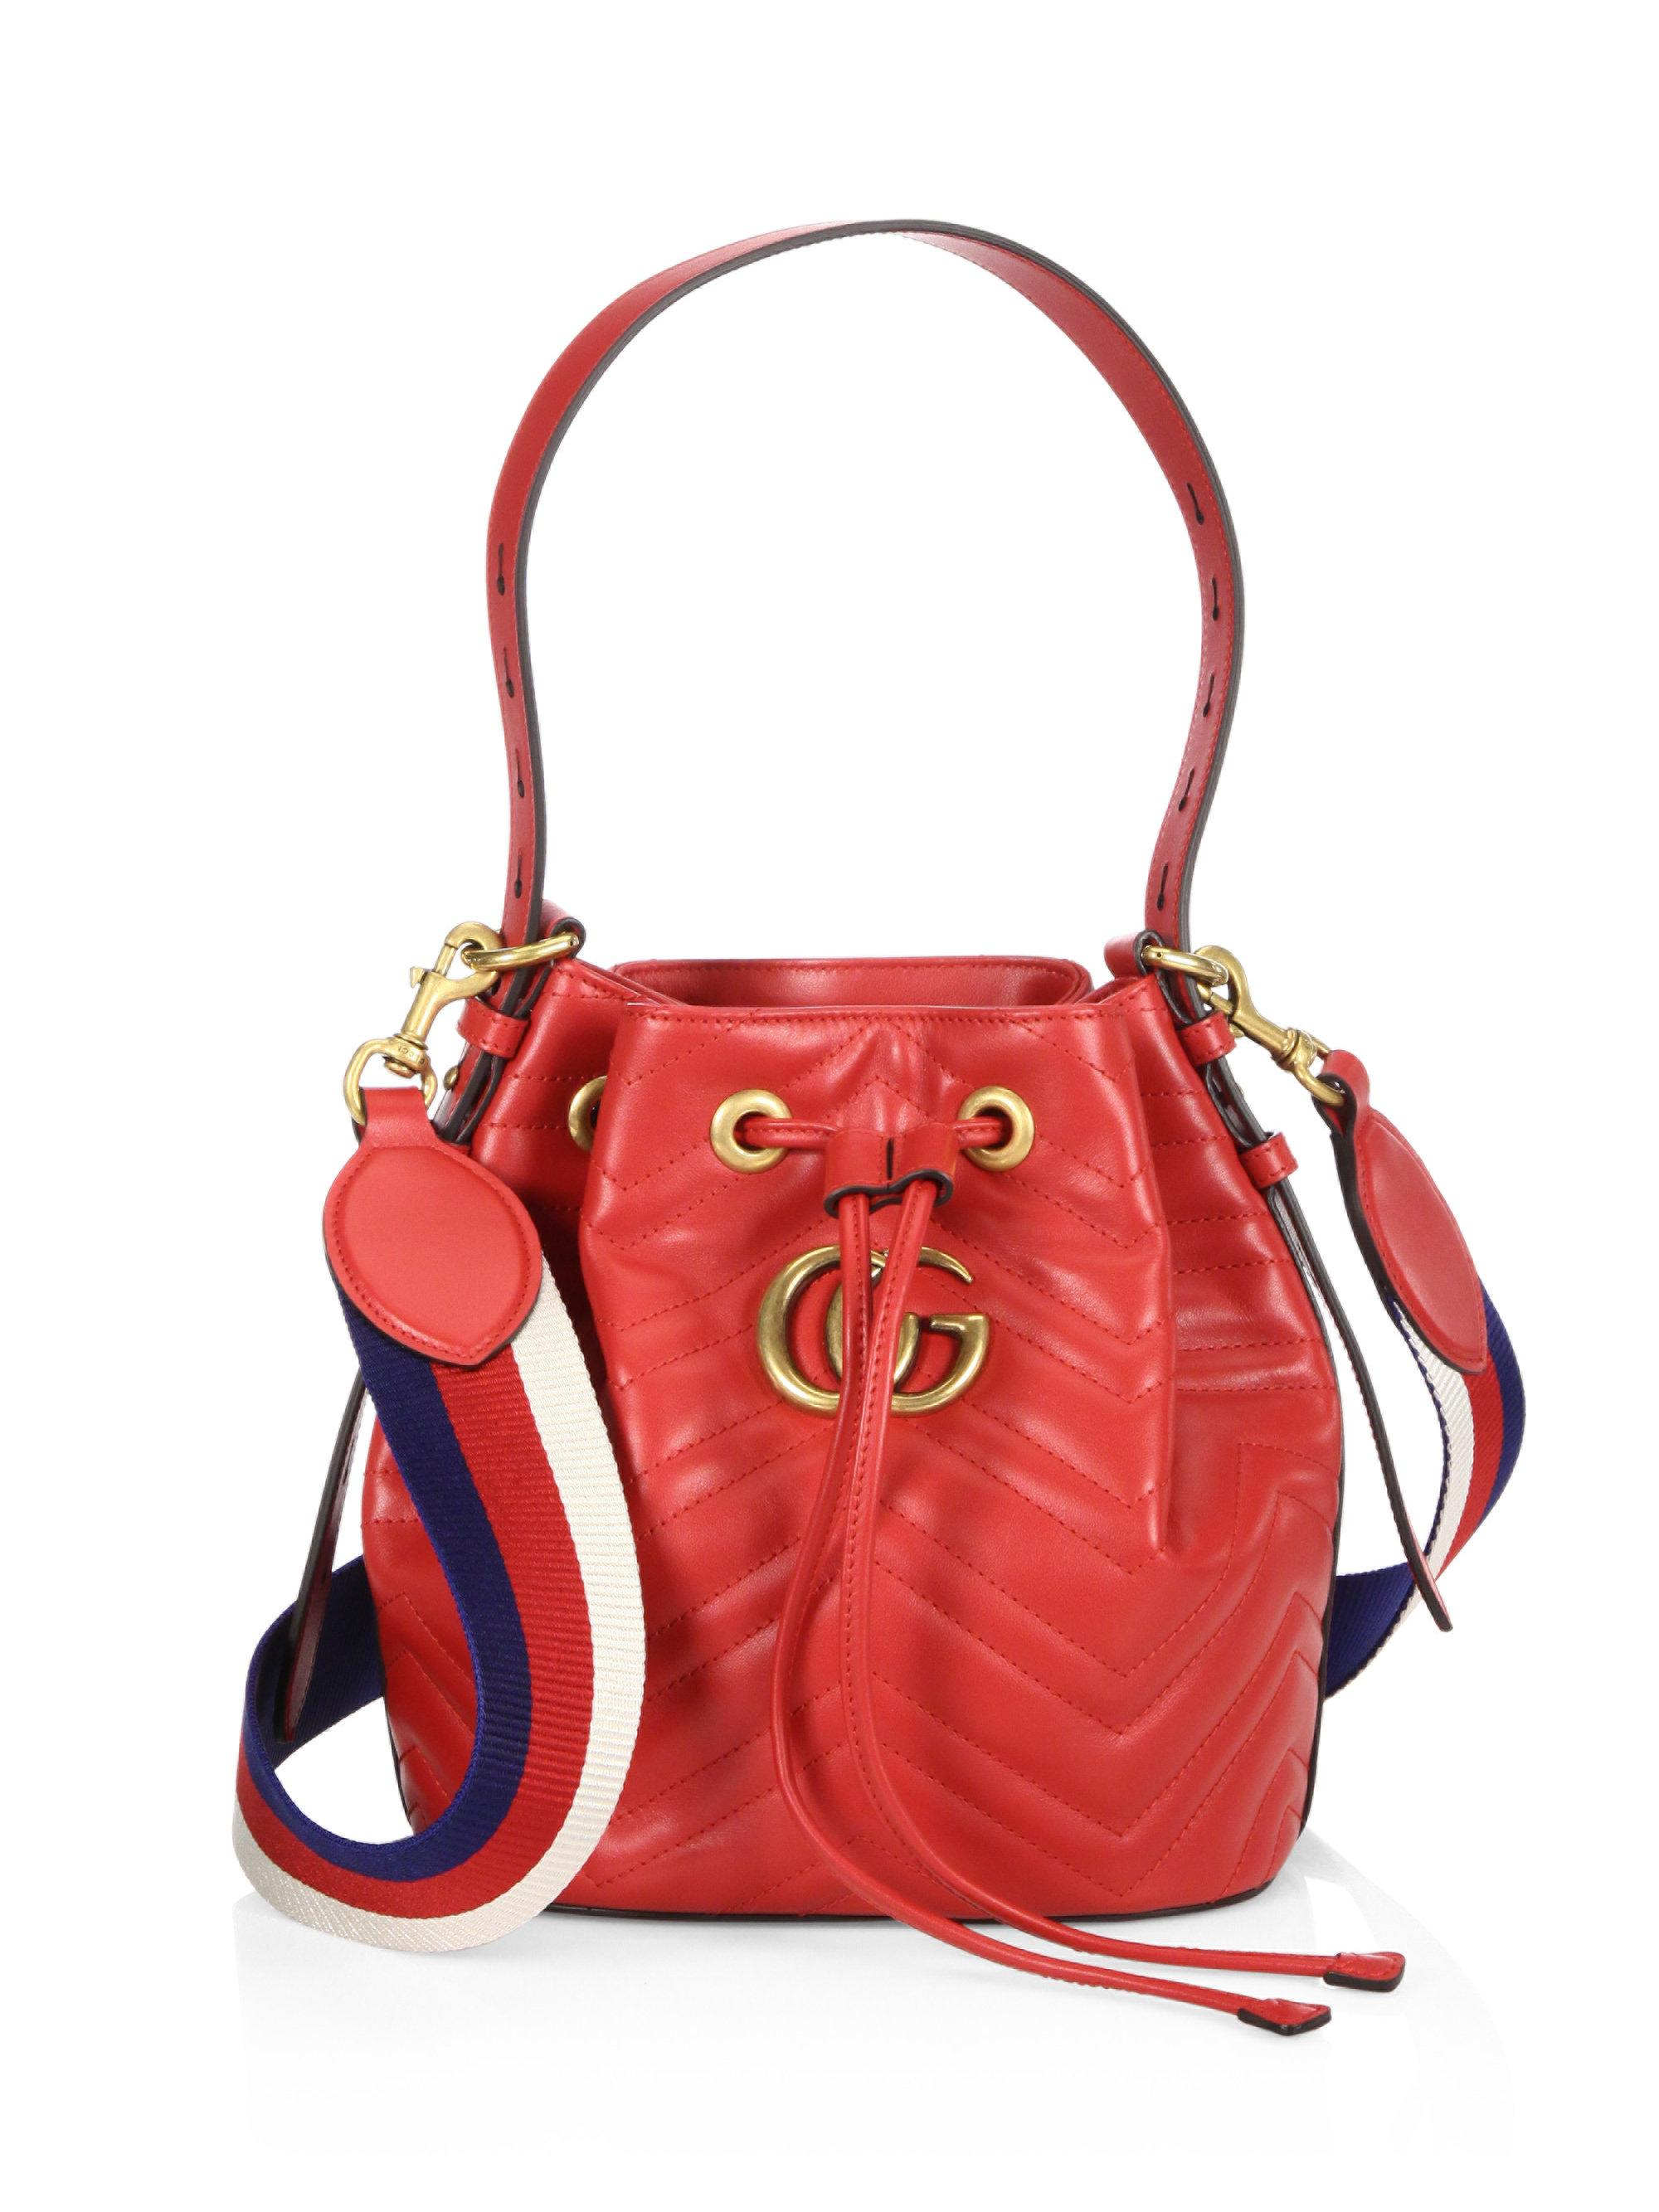 6345878ce2ebcd Gucci Gg Marmont Chevron Quilted Leather Bucket Bag in Red - Lyst